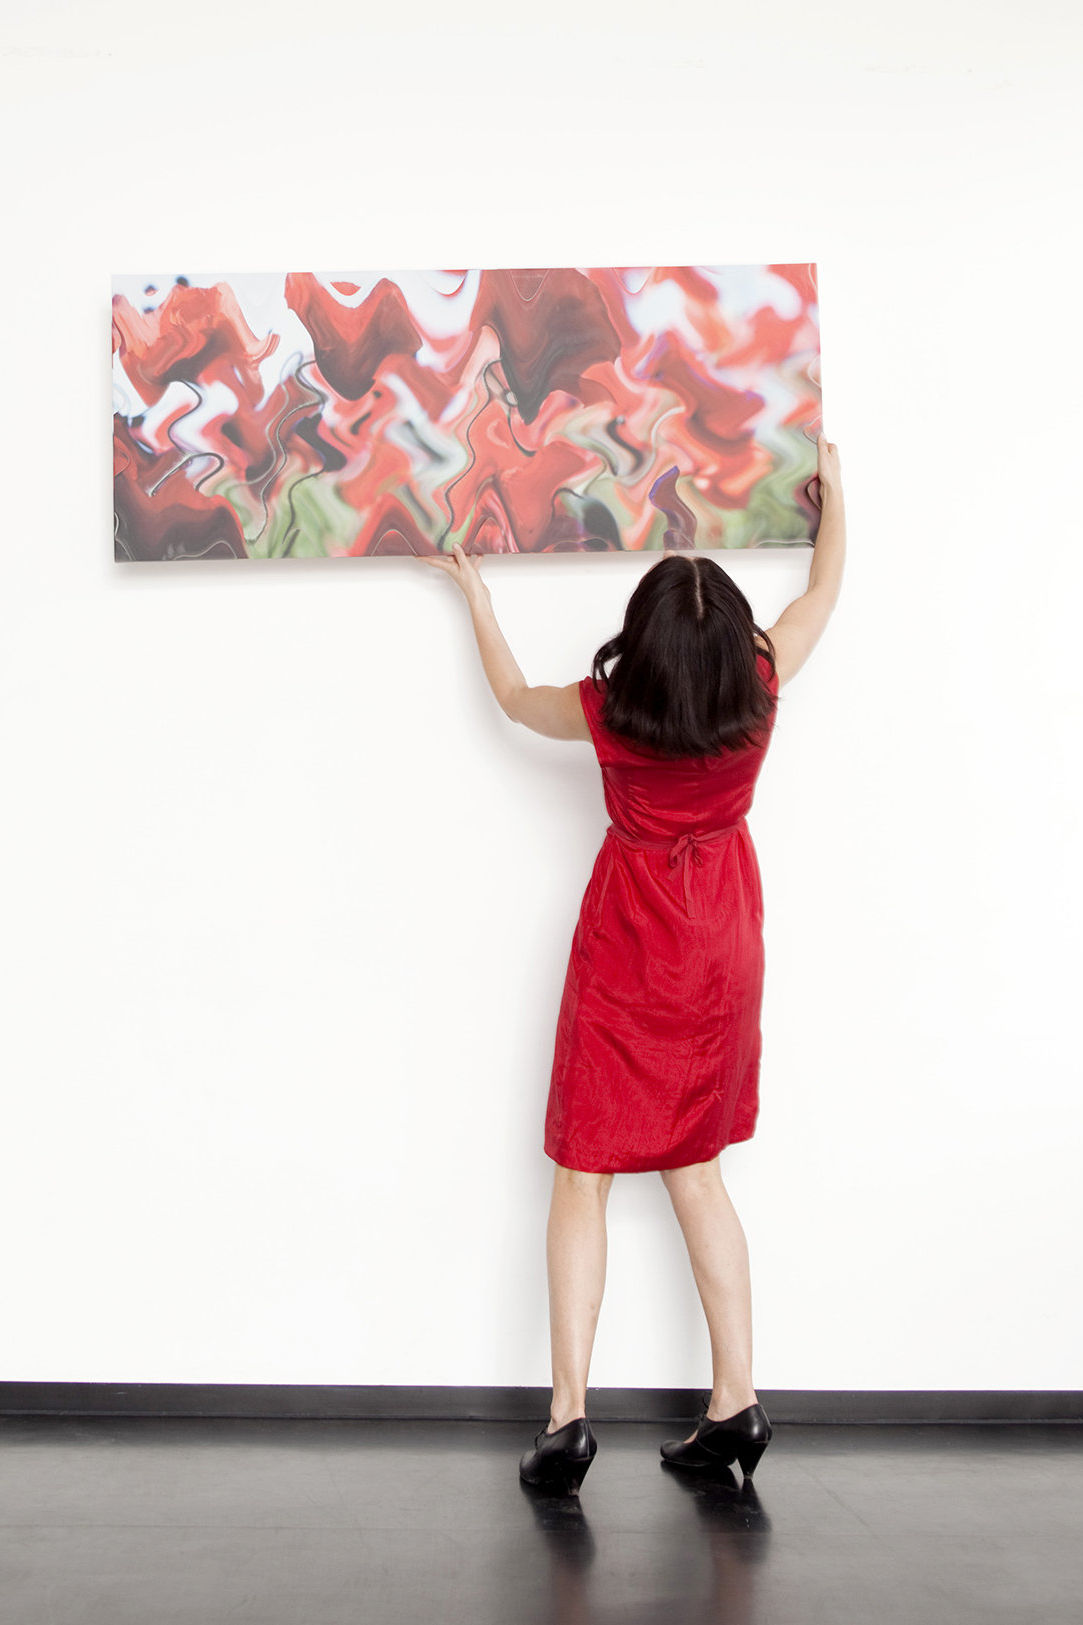 The Mistake Everyone Makes When Hanging Art (And What to Do Instead)